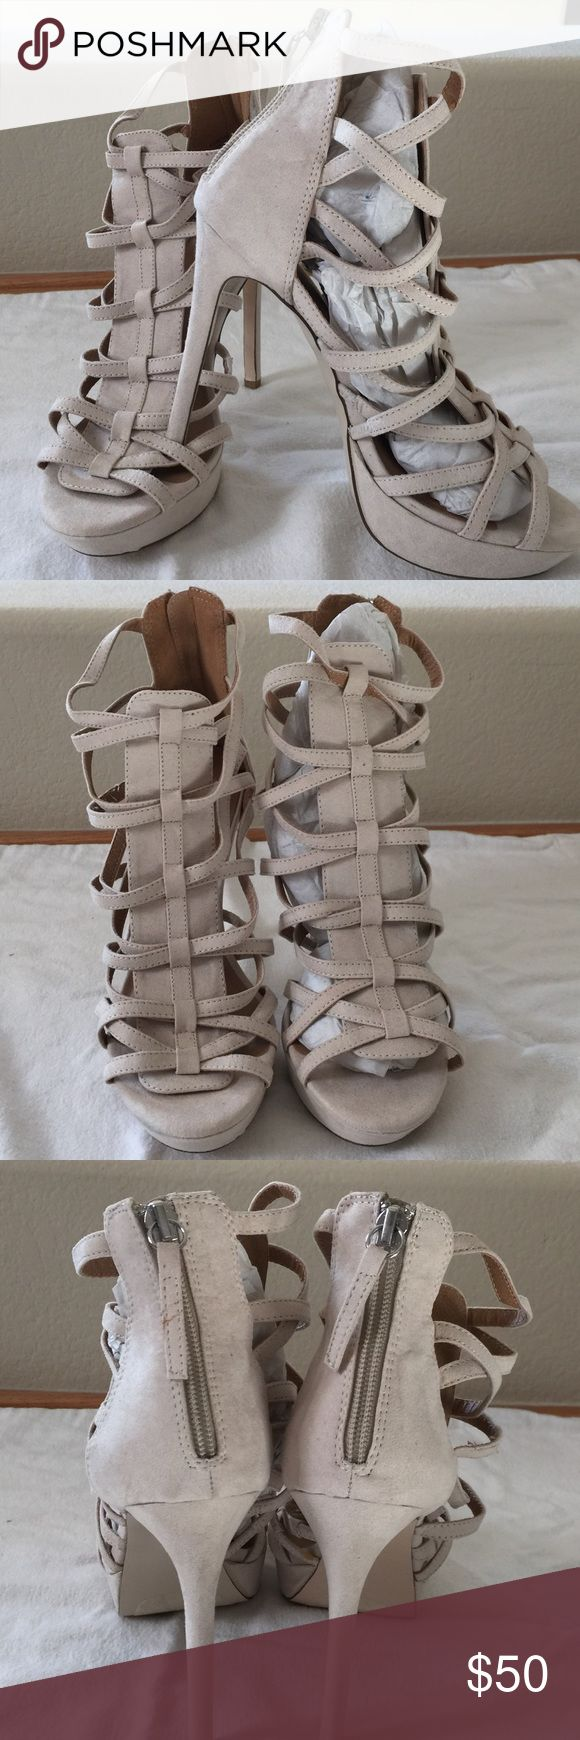 👠🌸Brand New Tan Sexy Stilettos🌸👠 Brand New Never Worn Tan Stilettos JustFab. No Box.👠  Sexy OpenToe Ankle ZipUp Size 7... 🚫NO TRADES🚫NOT NEGOTIABLE🚫 JustFab Shoes Heels